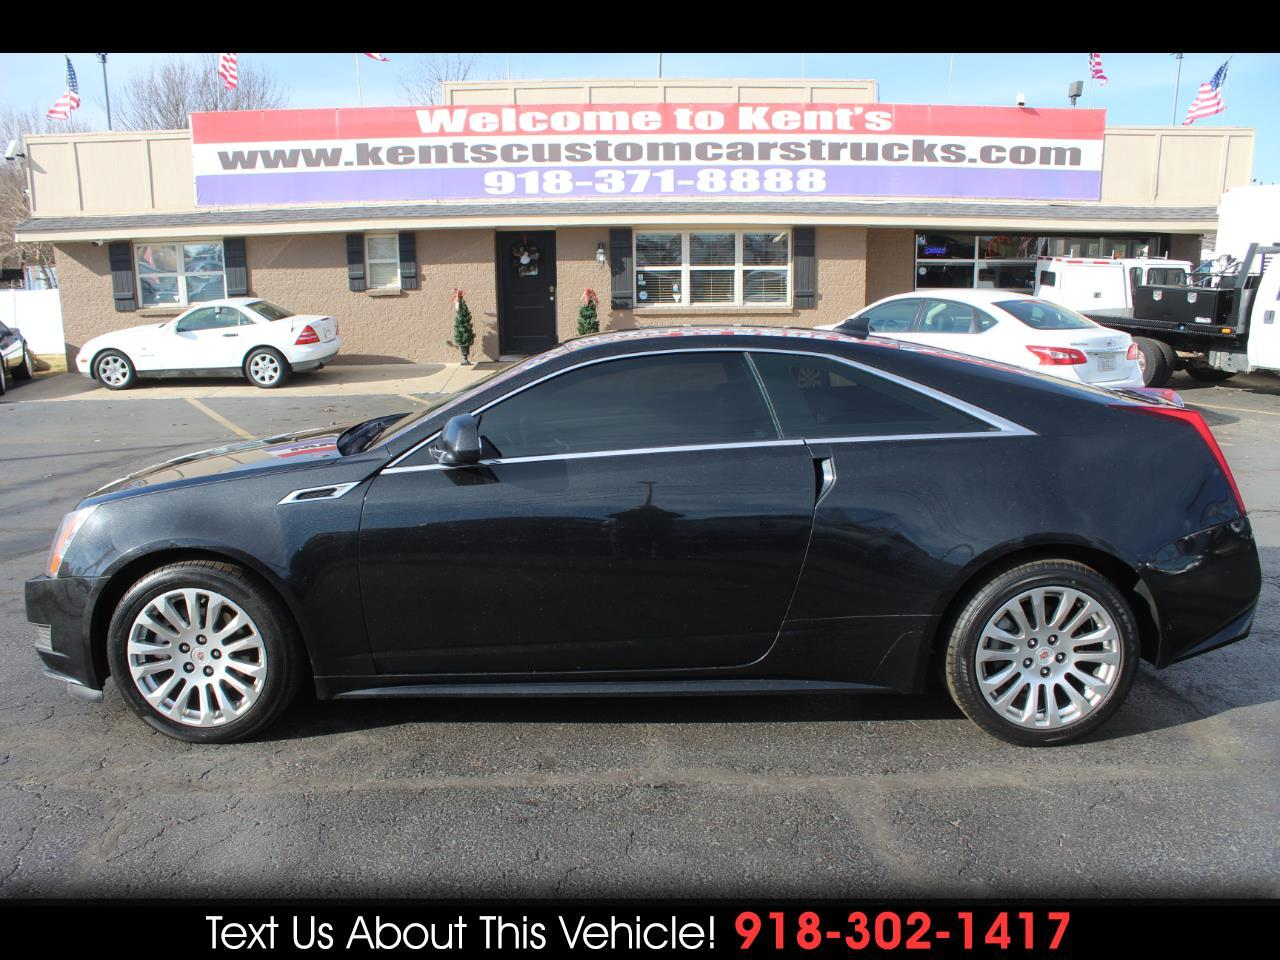 2012 Cadillac CTS 3.6L AWD Coupe